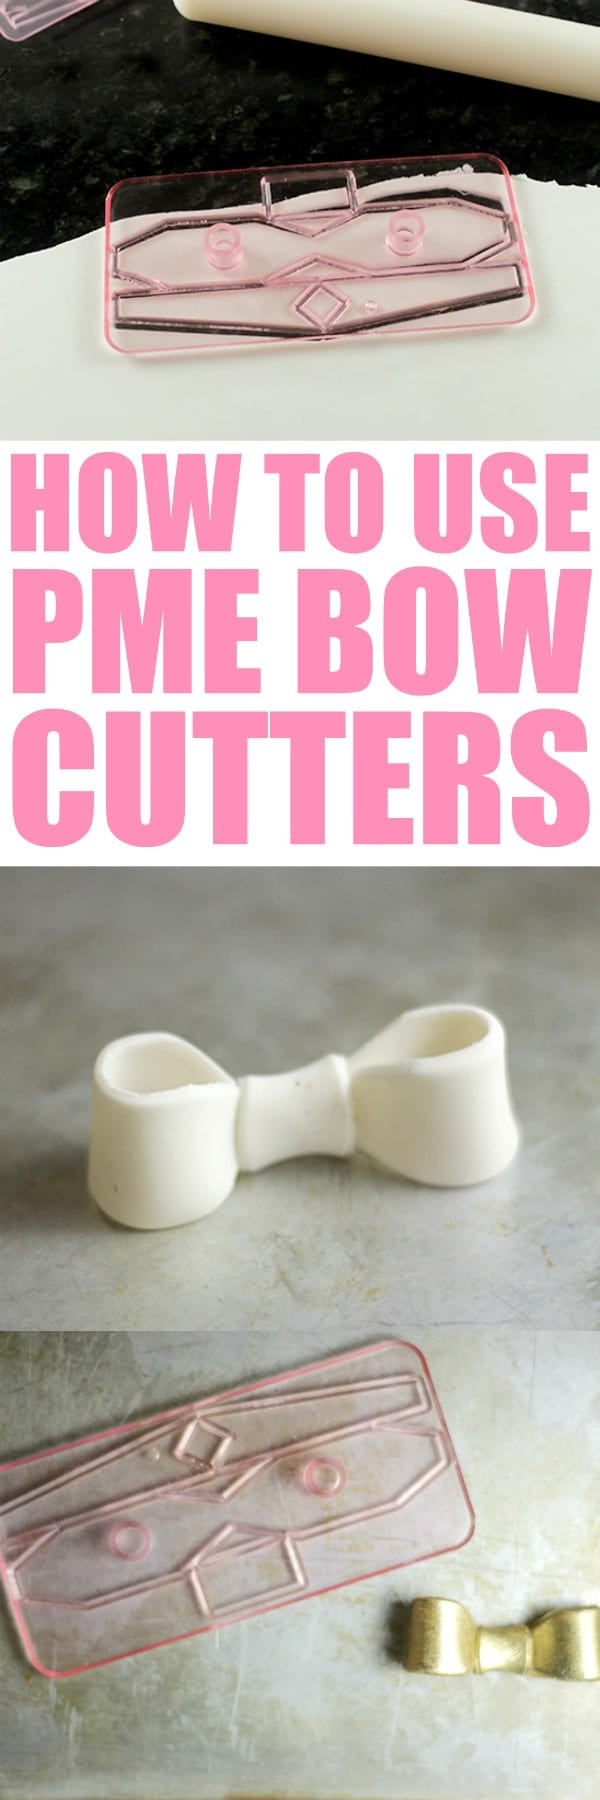 How to Use PME Bow Cutters by RoseBakes